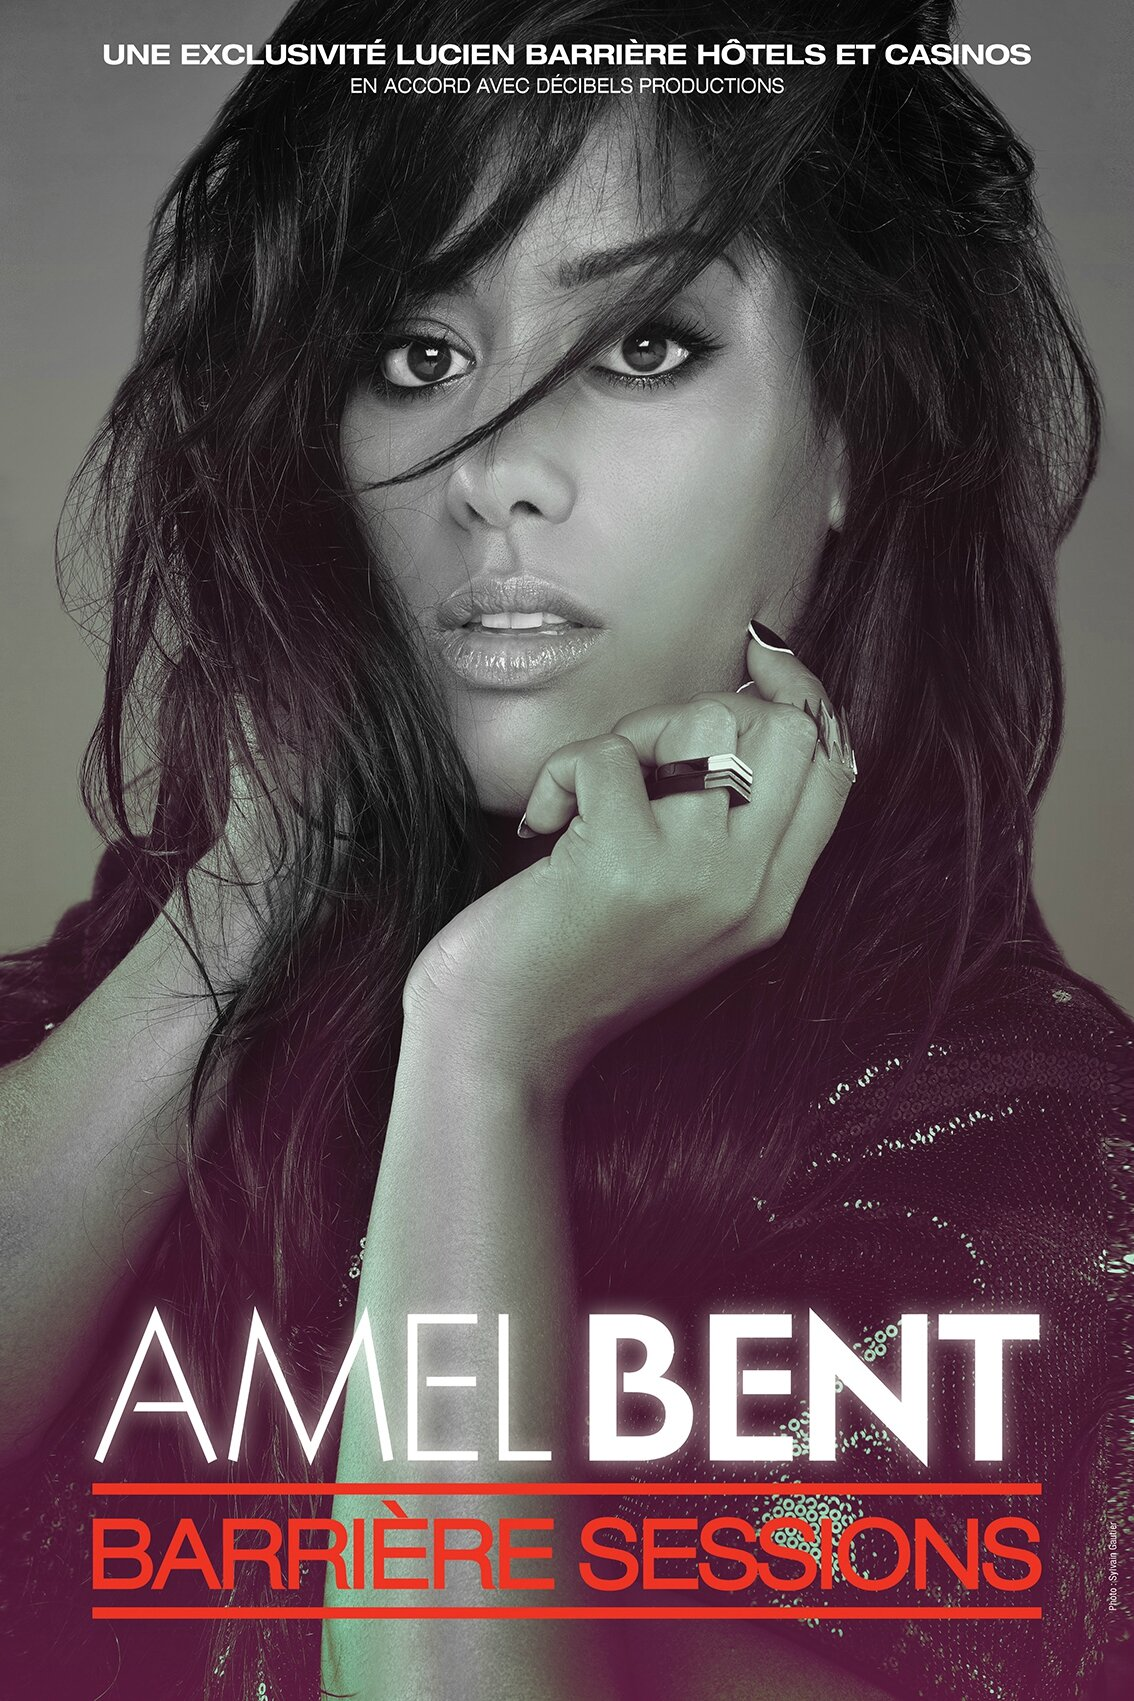 Amel Bent - BARRIERE SESSIONS